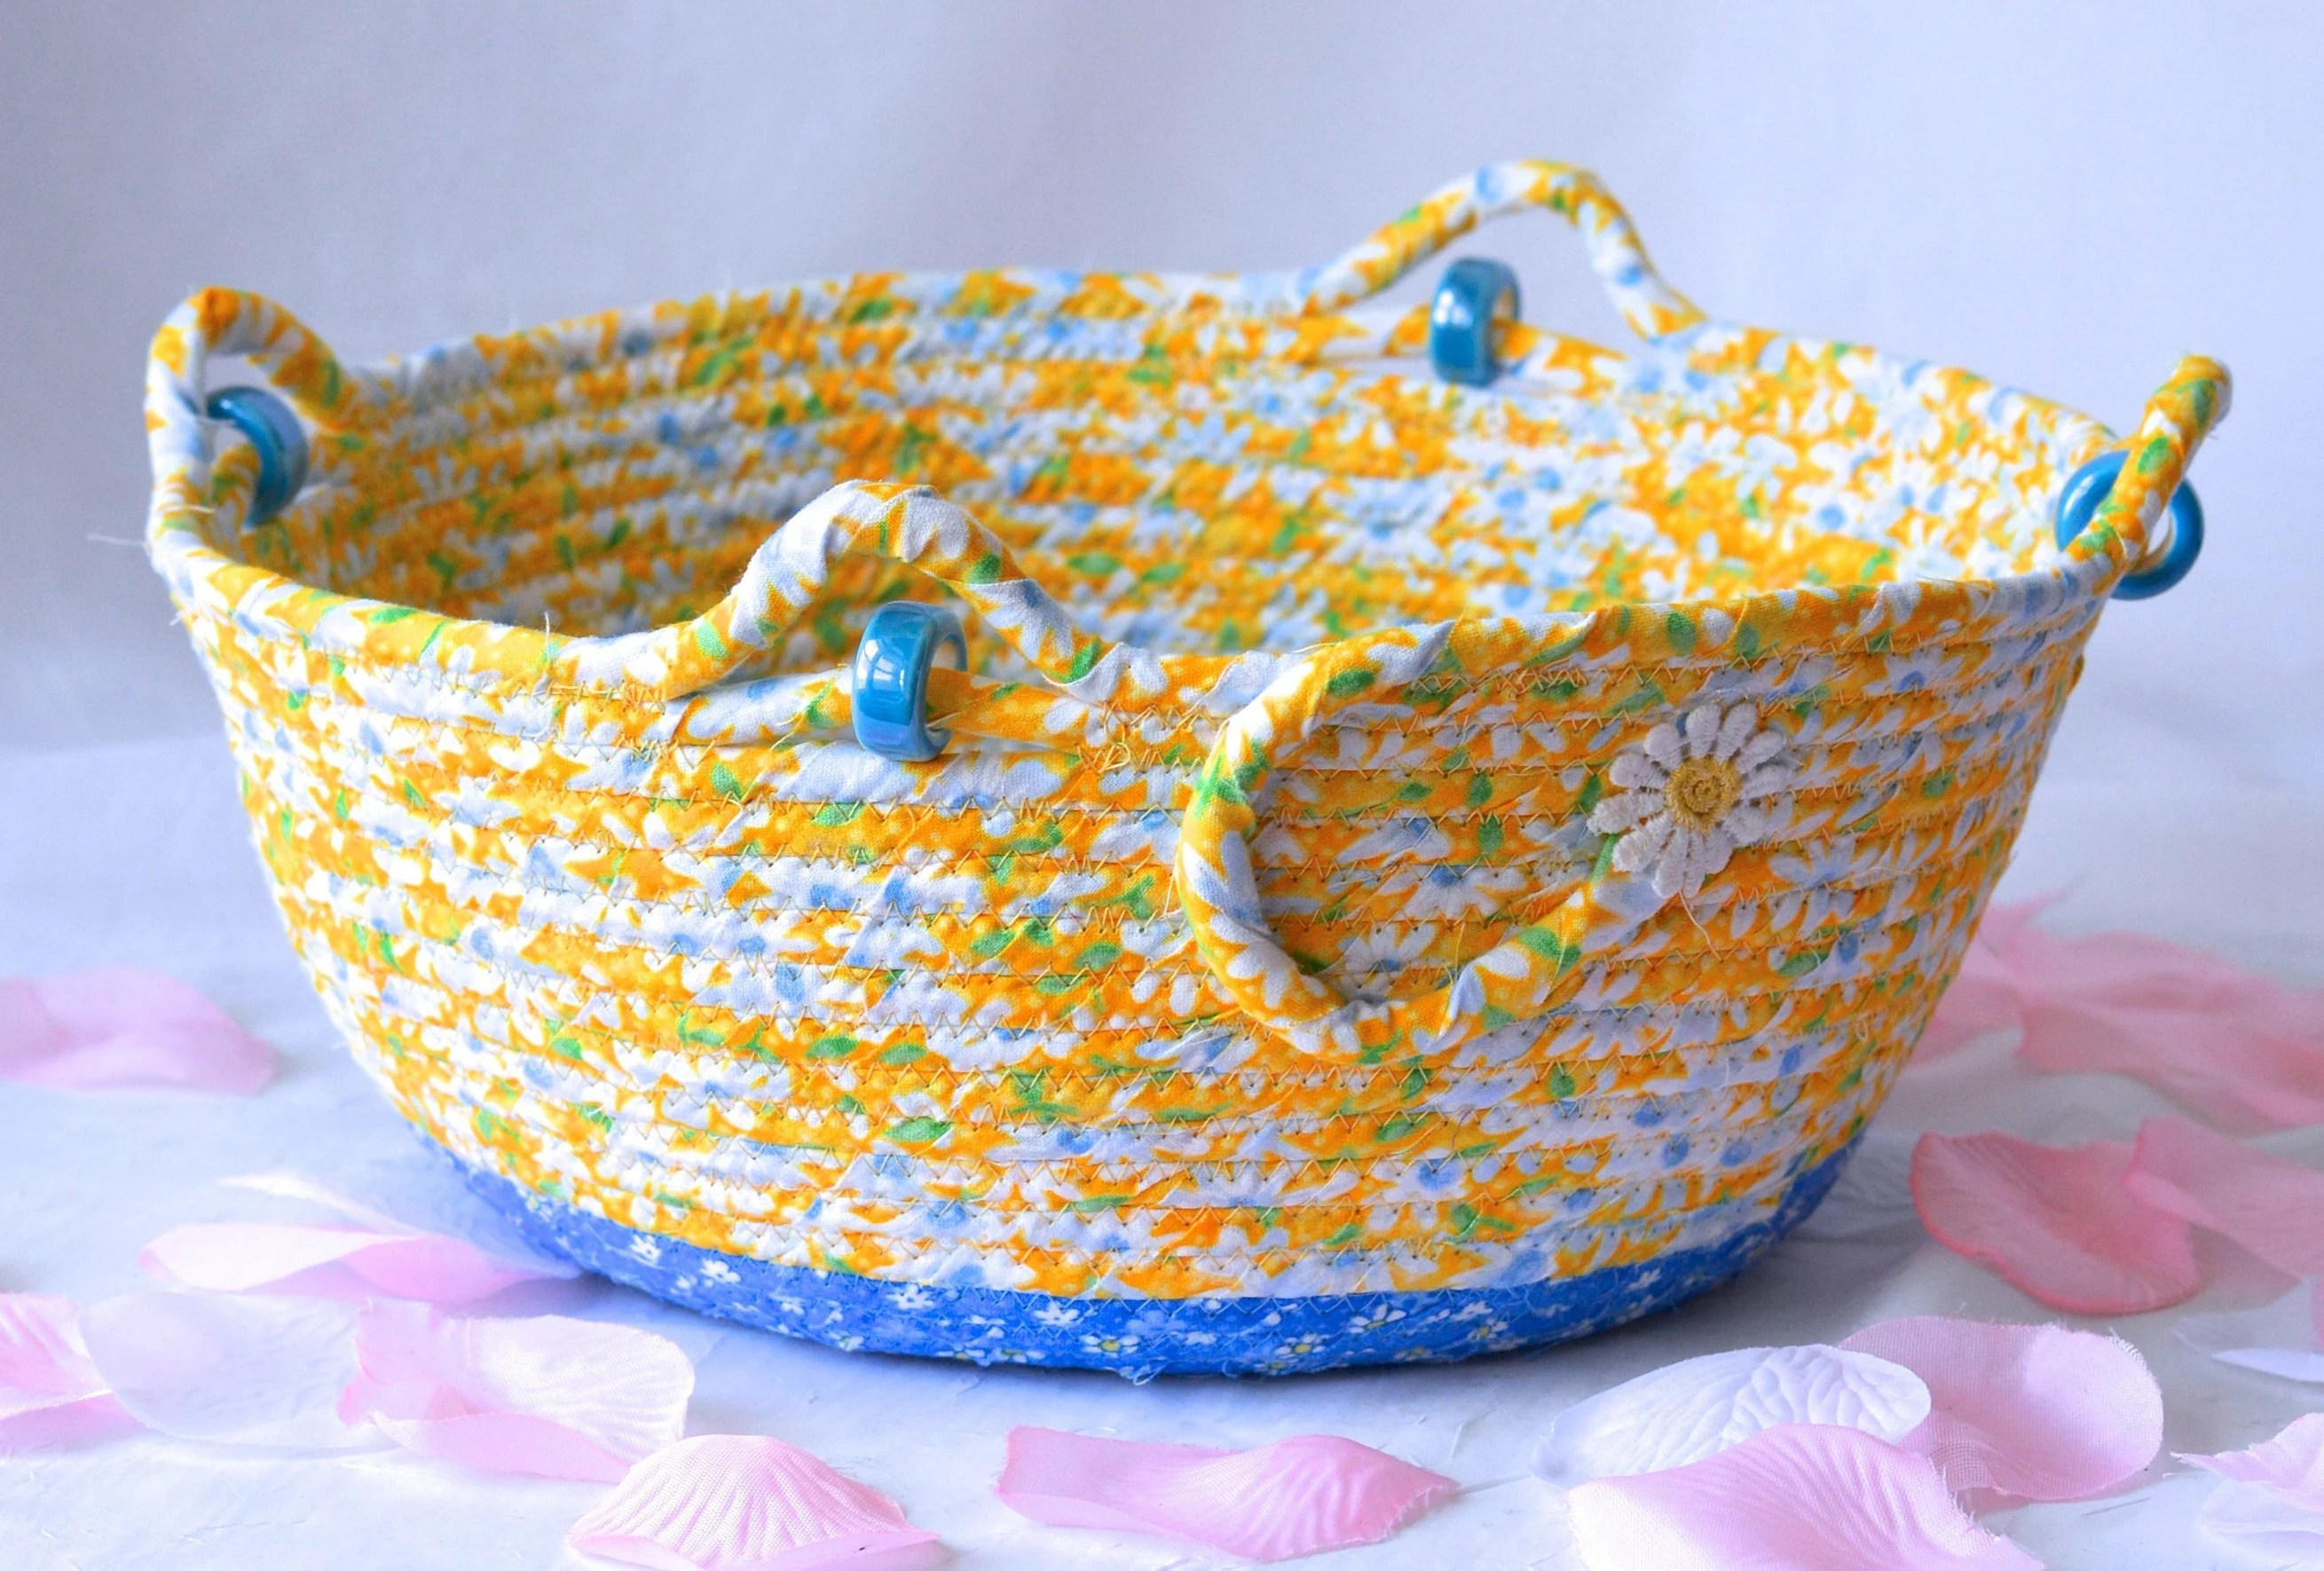 Picnic Decor Picnic Daisy Bowl Yellow Fiber Art Basket Handmade Quilted